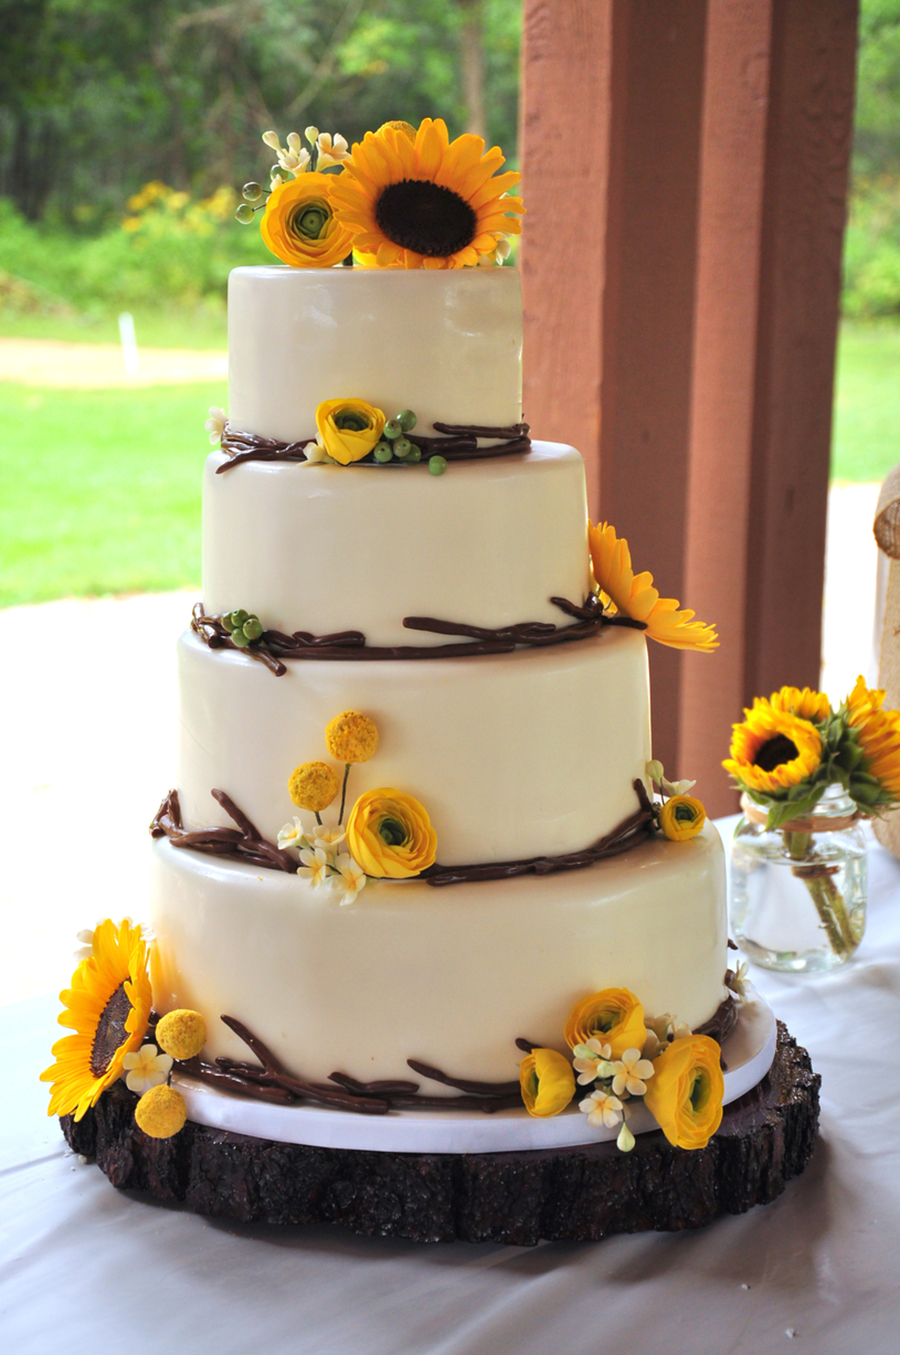 Modern rustic wedding cake for an outdoor wedding 4 offset tiers modern rustic wedding cake for an outdoor wedding 4 offset tiers with fondant twig border and handmade sugar flowers consisting of sunflowers ranunculus junglespirit Gallery